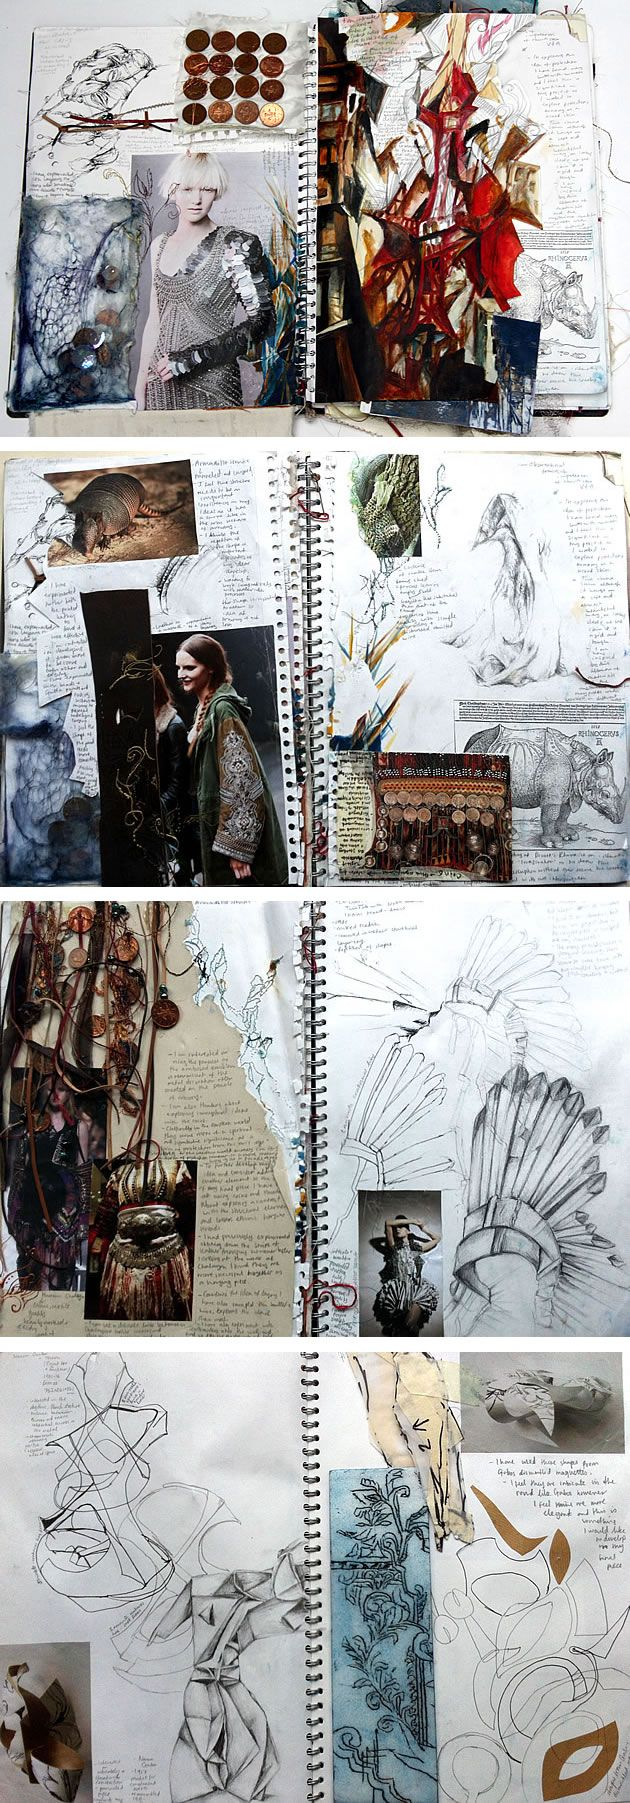 A Levels textiles armour project - follow the link to look at how the student develops ideas and presents their work